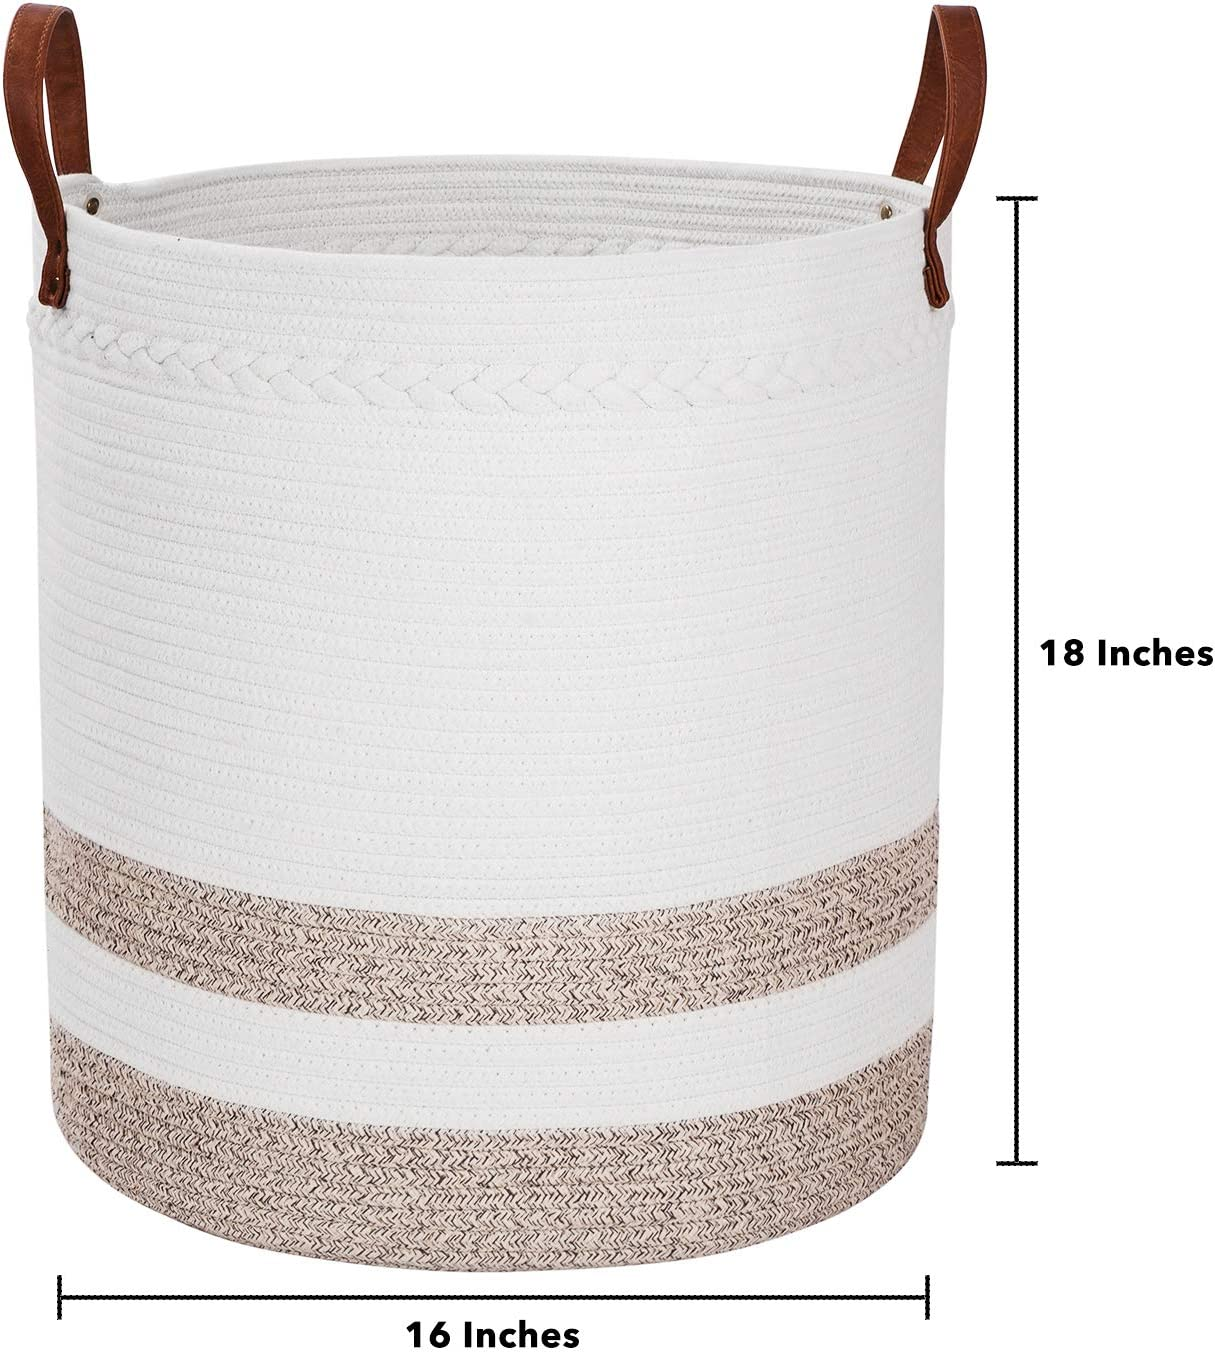 Amiglo Cotton Rope Basket 18 x 16 Extra Large Decorative Woven Storage Basket for Baby Toys Comforter Cushions Nursery Bin Laundry Hamper with Leather Handle Blanket Pillows Sofa Throws Towels